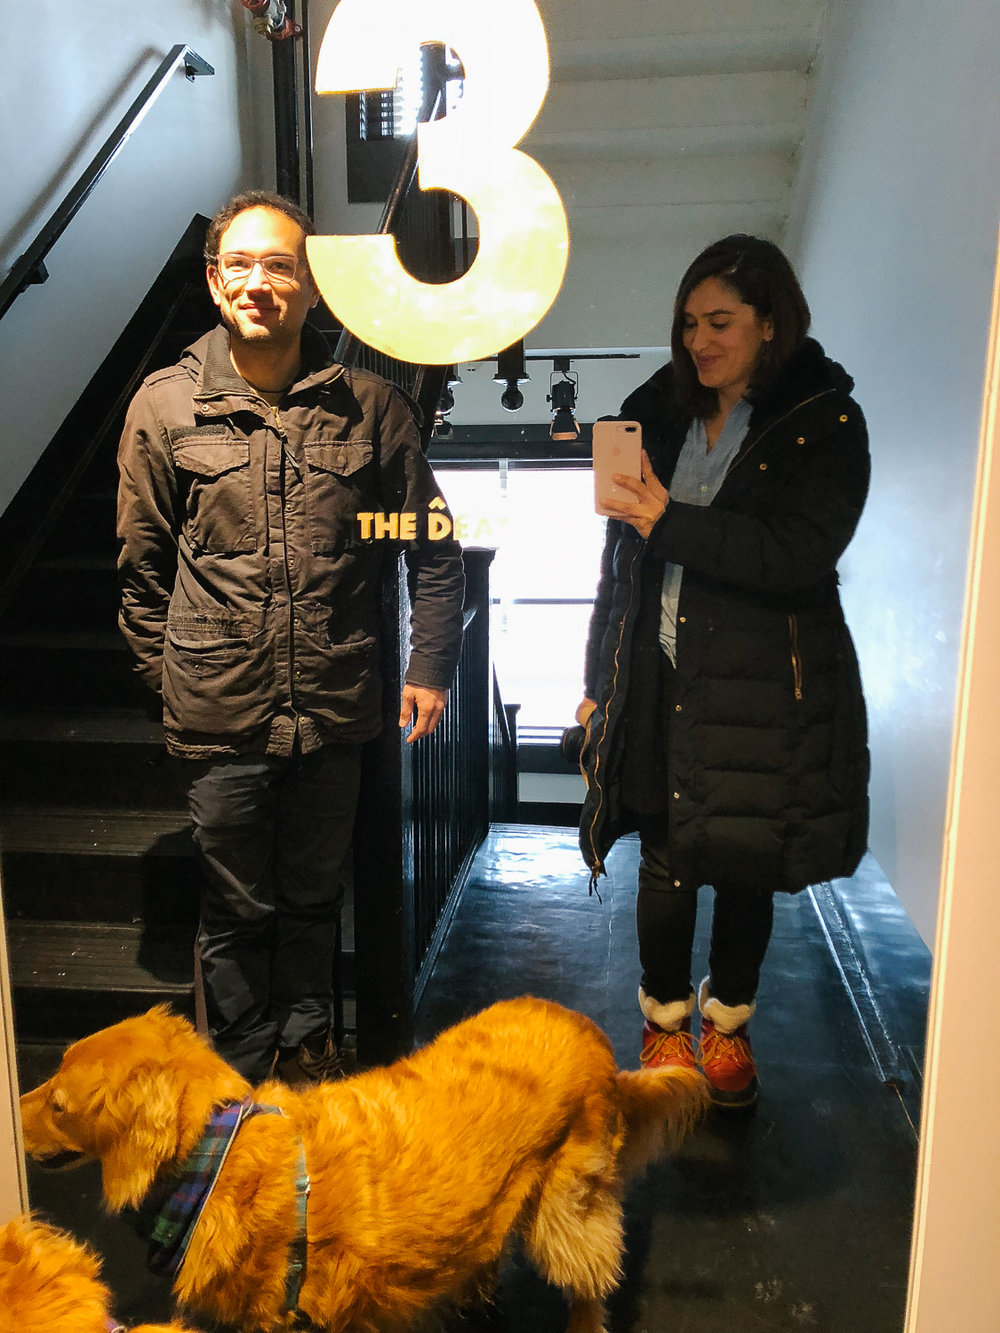 Pro tip: The elevator might freak your dog out so we recommend taking the stairs to and from your room.